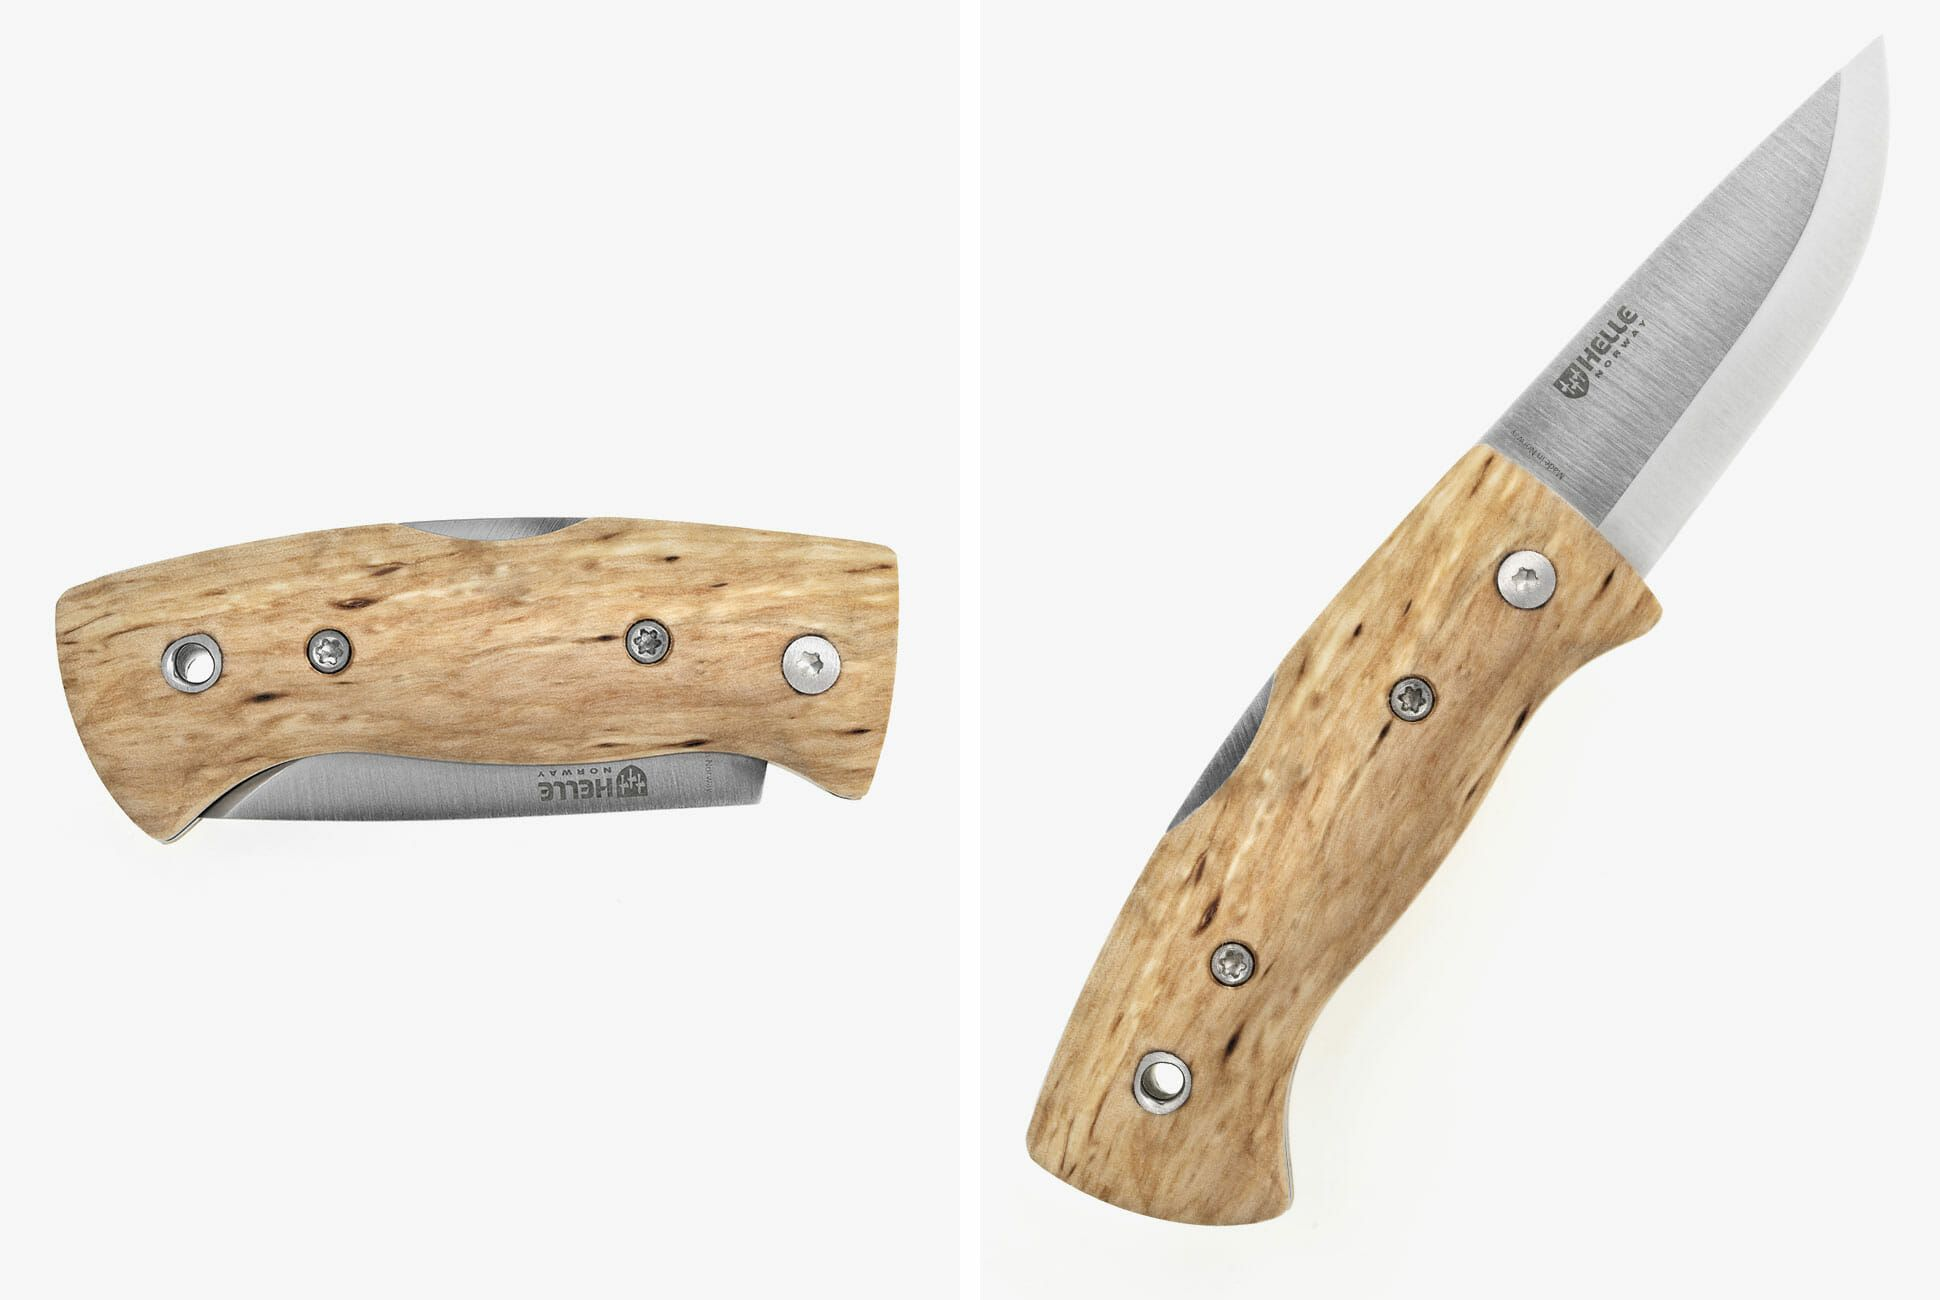 An 87 Year Old Company Just Made Its First True Edc Pocket Knife